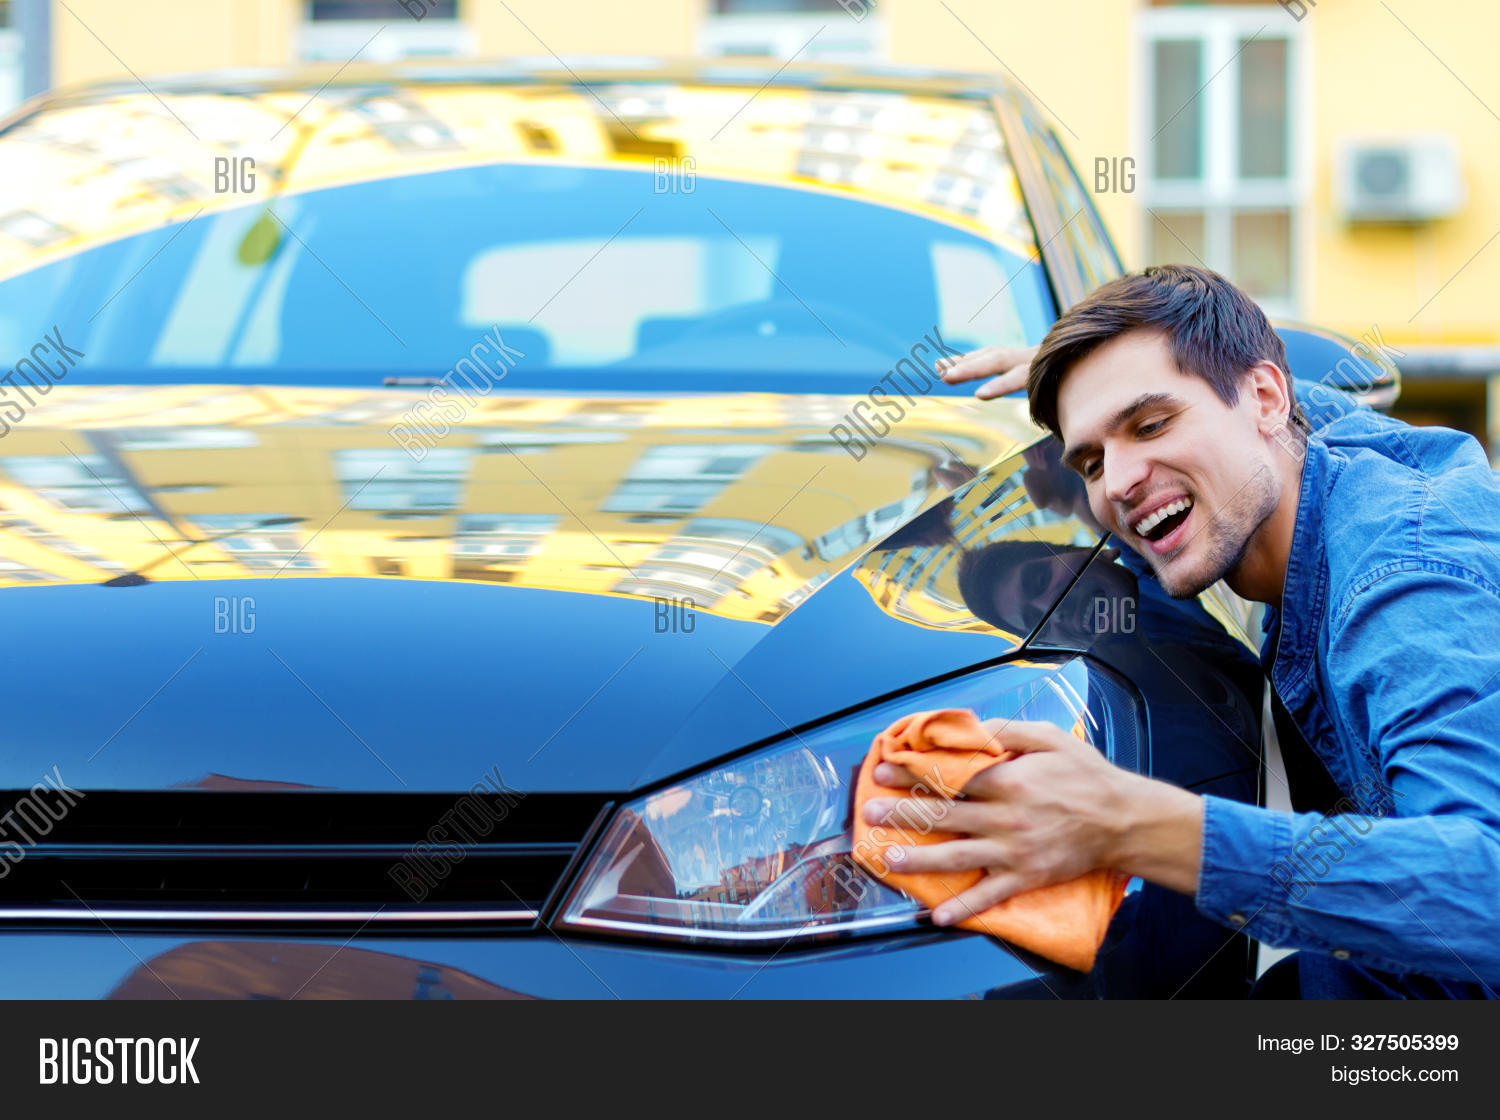 adult,auto,automobile,black,brunette,buying,car,casual,caucasian,cheerful,city,cleaning,concept,customer,denim,drive,driver,hand,happy,holding,hugging,lifestyle,love,luxury,machine,male,man,modern,new,orange,owner,people,person,purchase,rag,relationship,road,service,shirt,single,smiling,street,stroking,transport,transportation,travel,vehicle,wiping,work,young